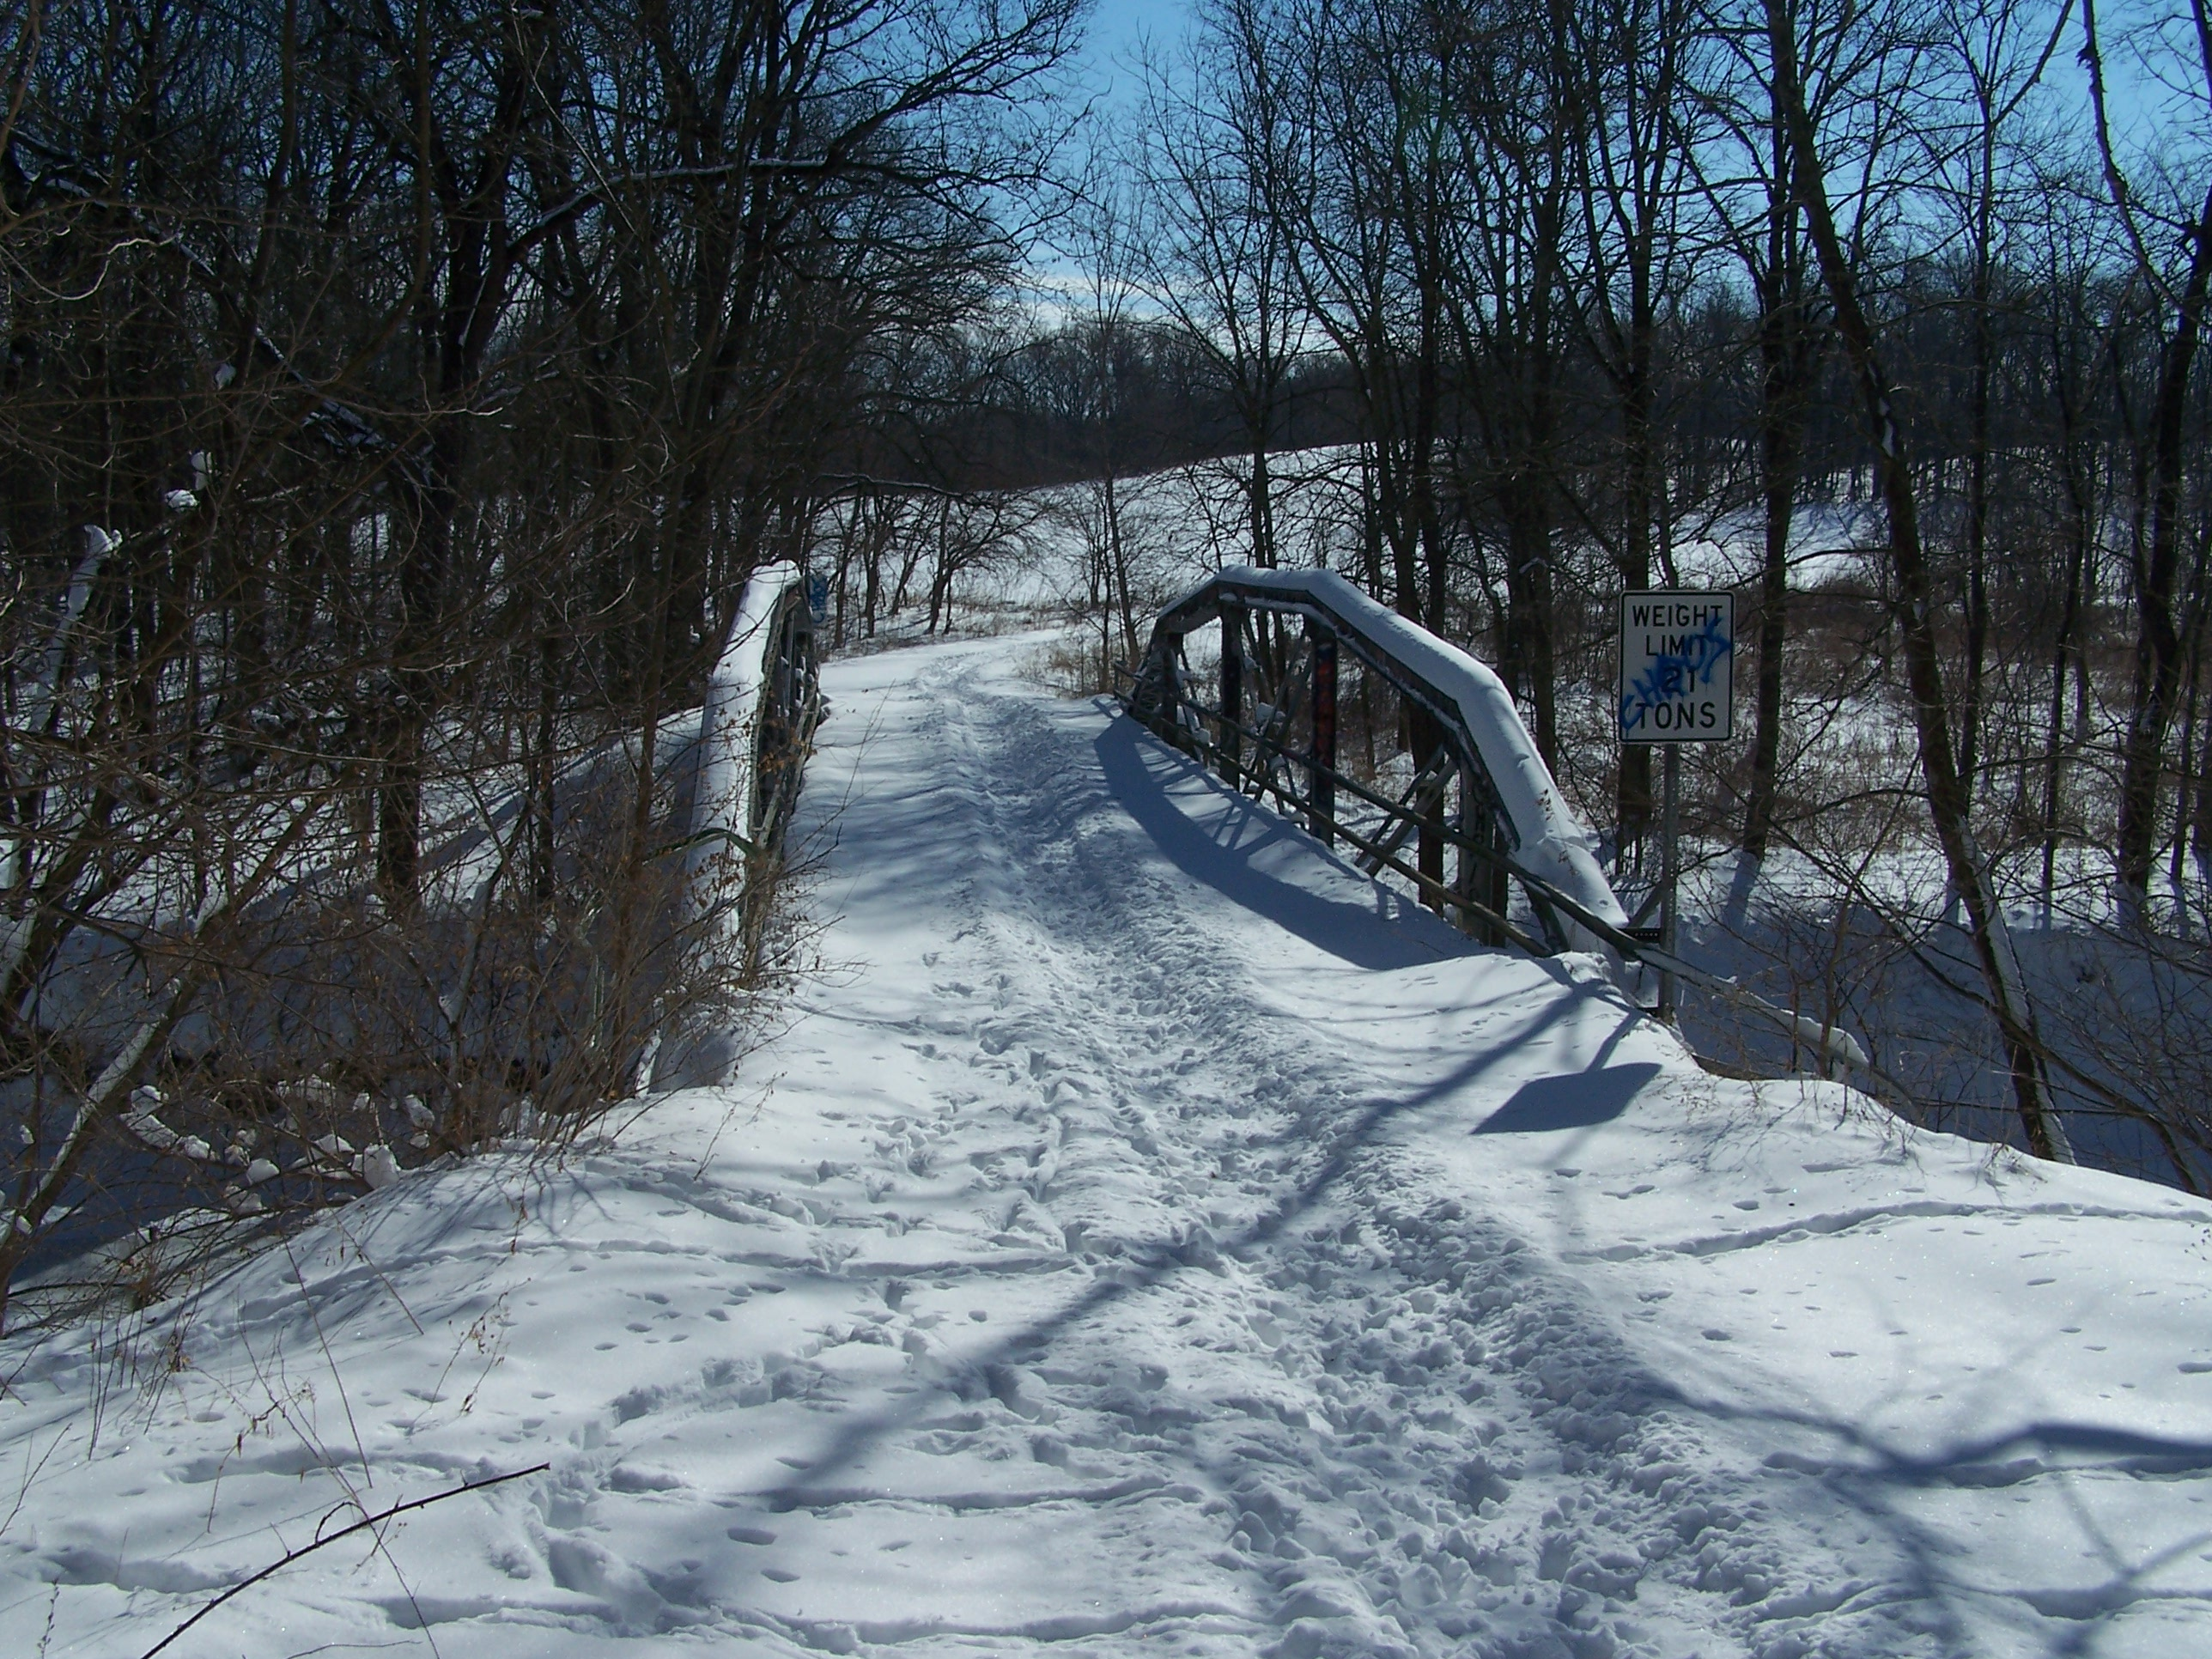 Haunted cry baby bridge investigated by Noah Voss